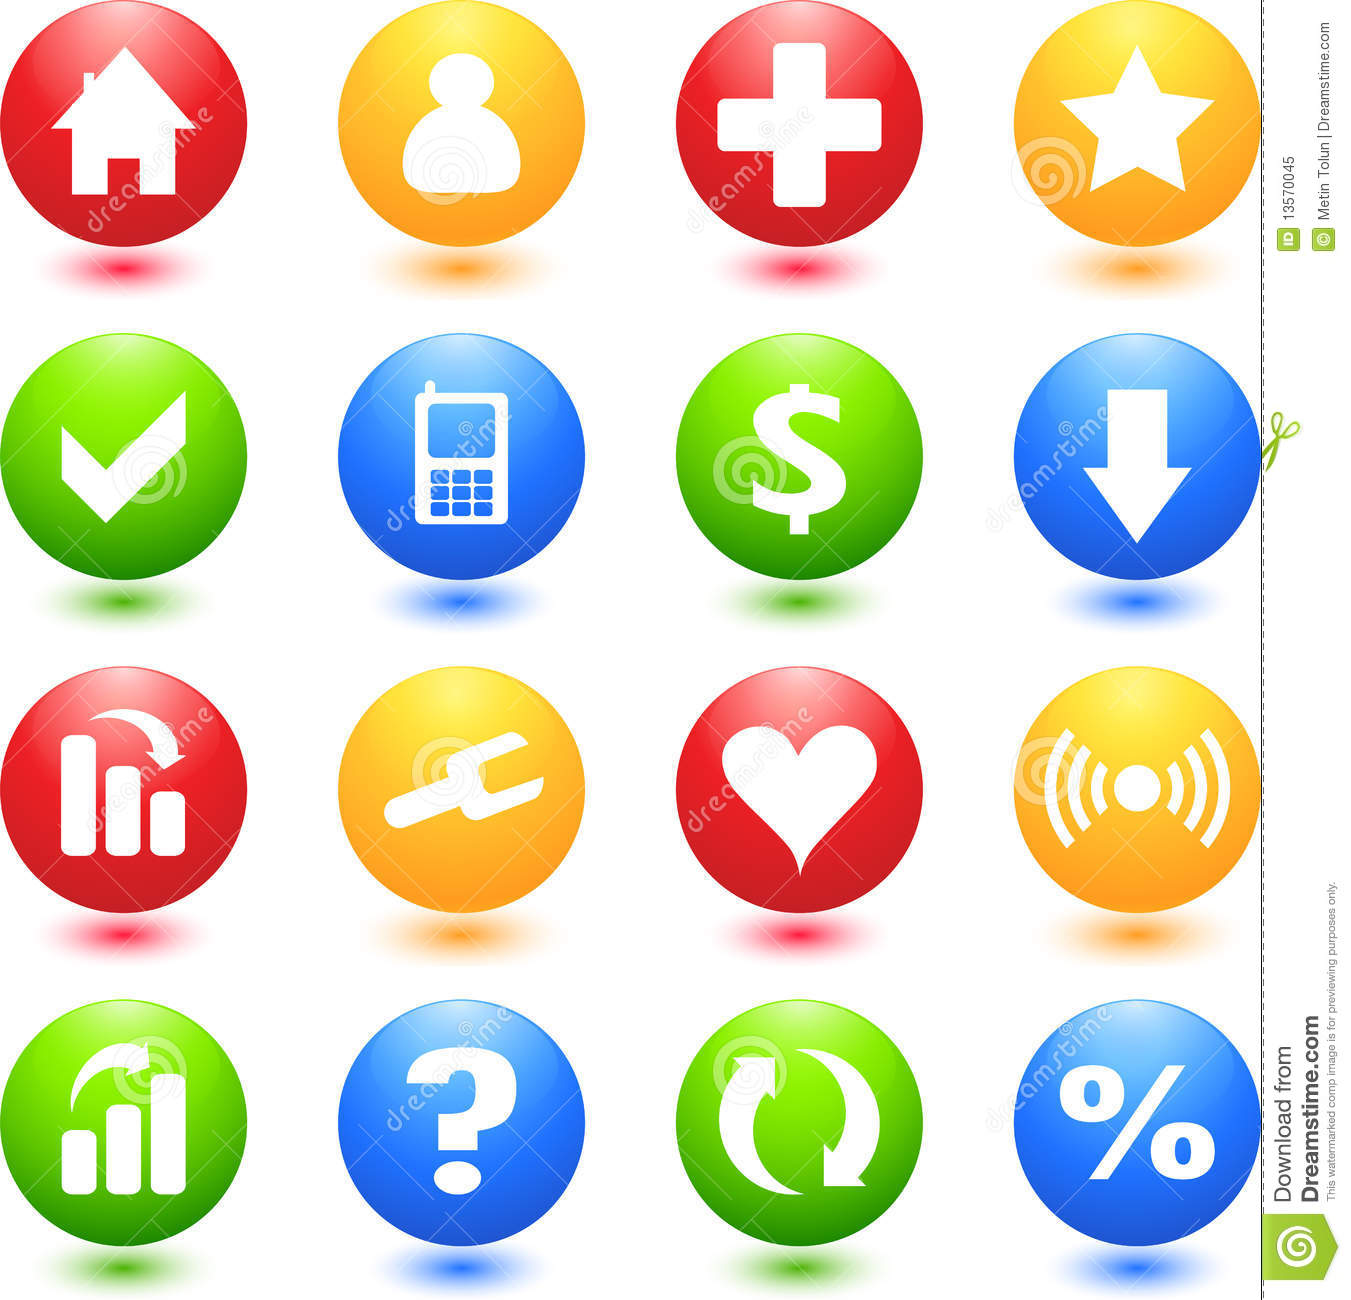 Colored Web Sign Icons Royalty Free Stock Photo Image